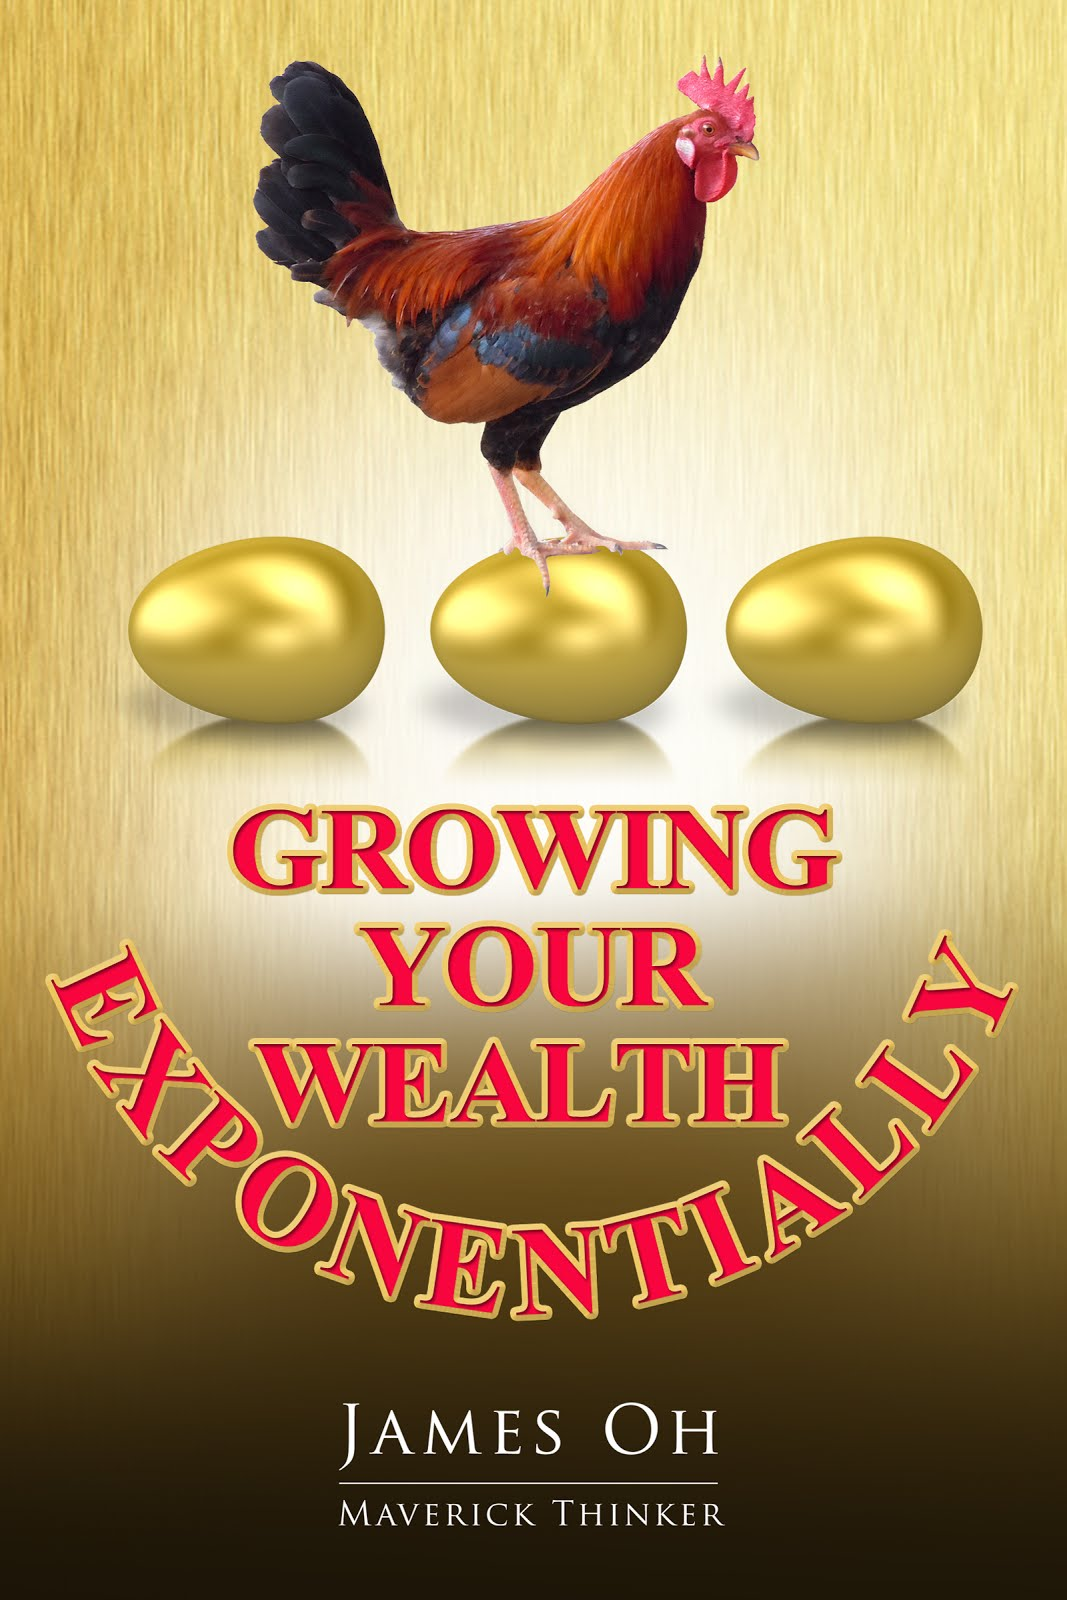 Growing Your Wealth Exponentially